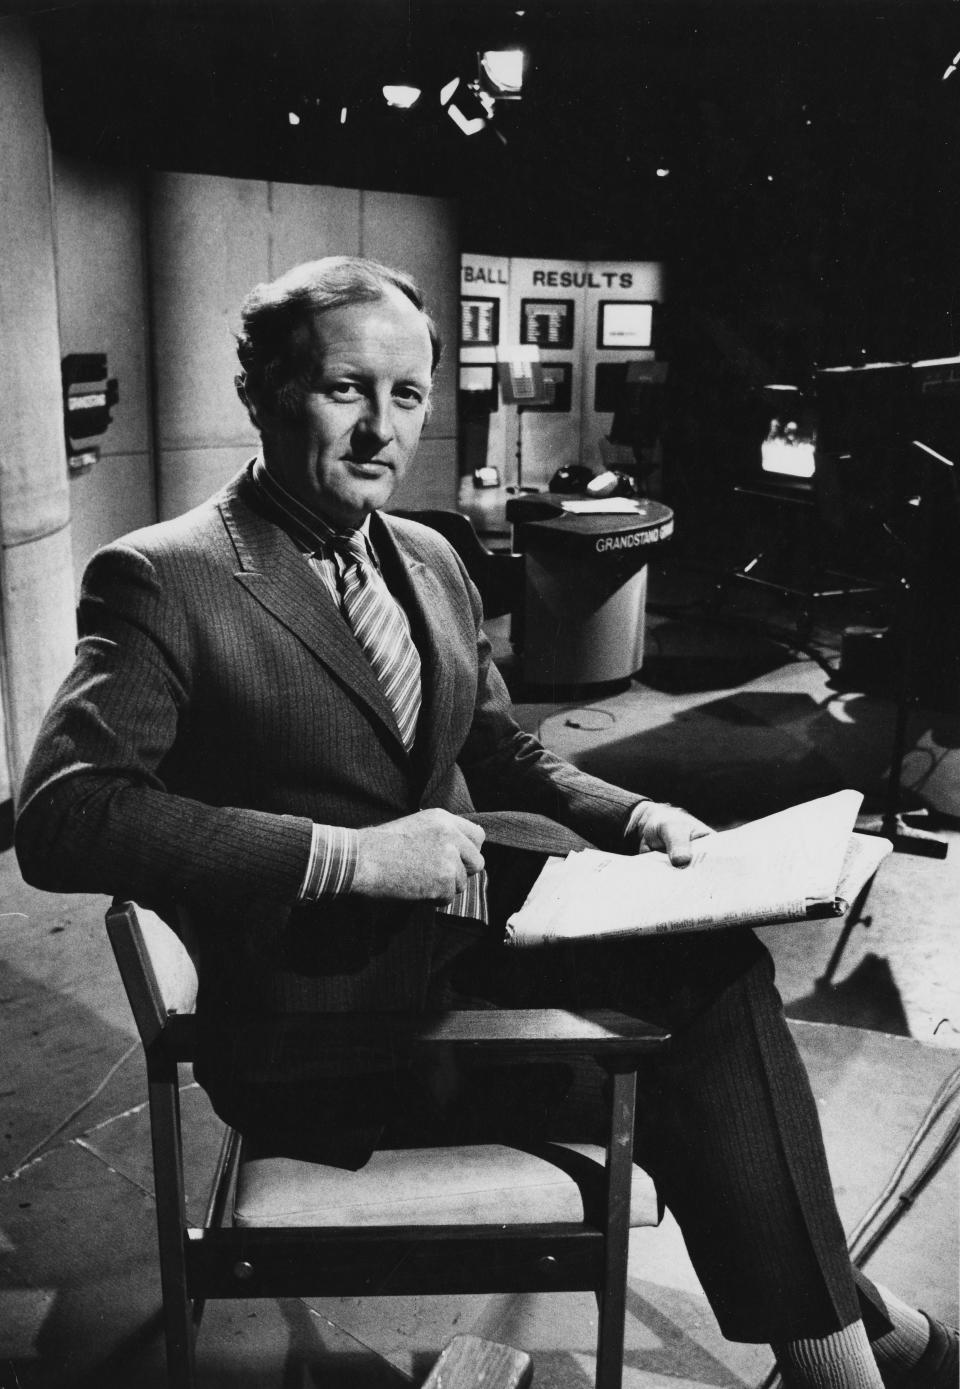 Television presenter Frank Bough pictured on the set of the television show 'Grandstand', April 10th 1971. (Photo by Don Smith/Radio Times/Getty Images)